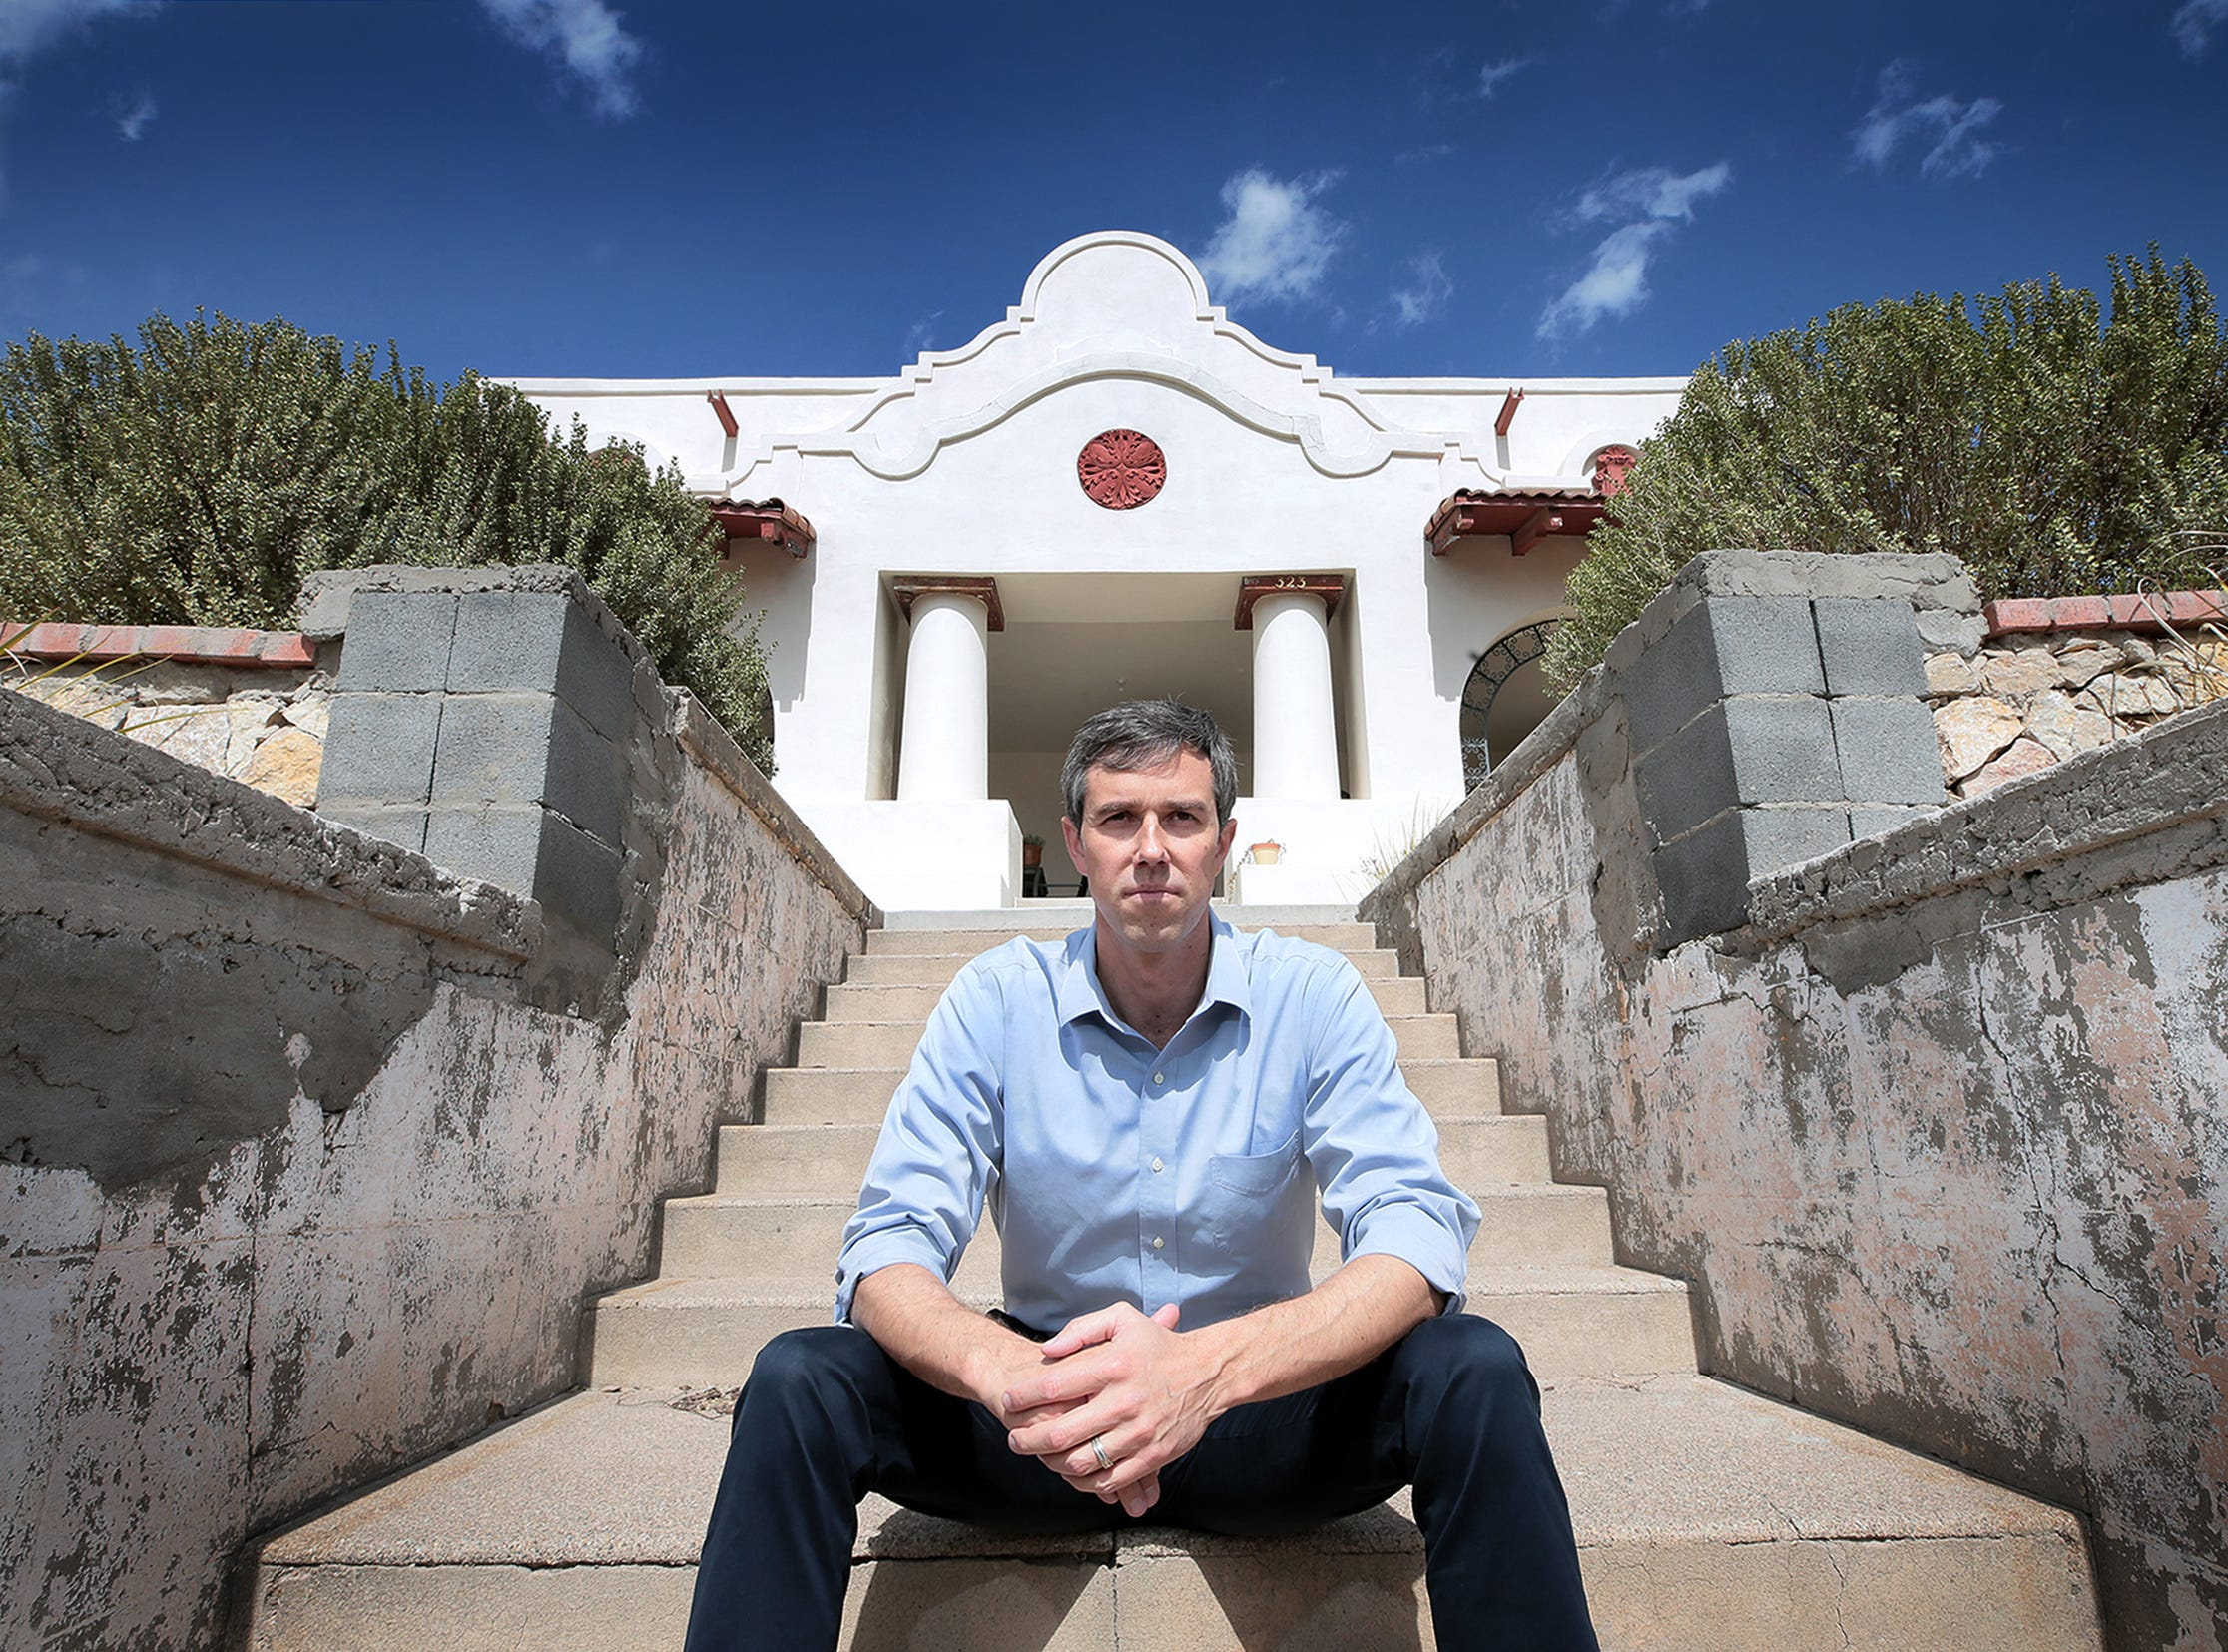 Democrat Beto O'Rourke, shown at his home in Sunset Heights in El Paso, officially entered the presidential race Thursday morning and immediately became the focus of Republican attacks.